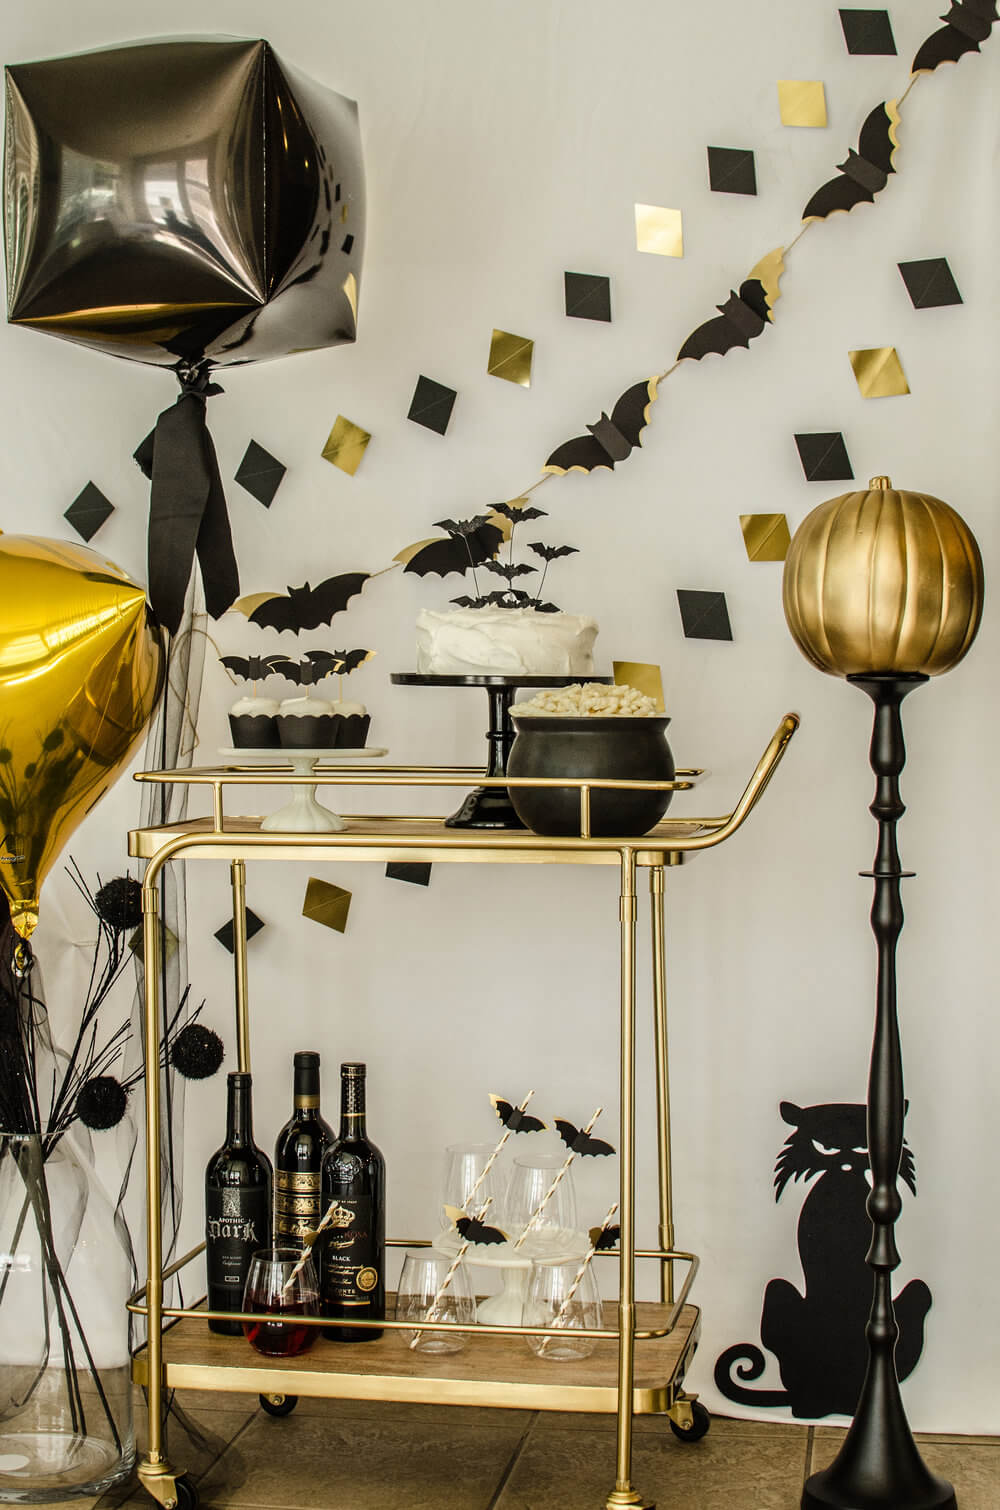 Halloween Bar Cart Styling Ideas - include drink stirrers topped with bats, a fun black cat silhouette on the wall and even a gold pumpkin on a tall stand. Click to see more from this Bar Cart styled by party stylist Carolina of Mint Event Design. #partyideas #partyinspiration #halloween #barcart #barcartdecor